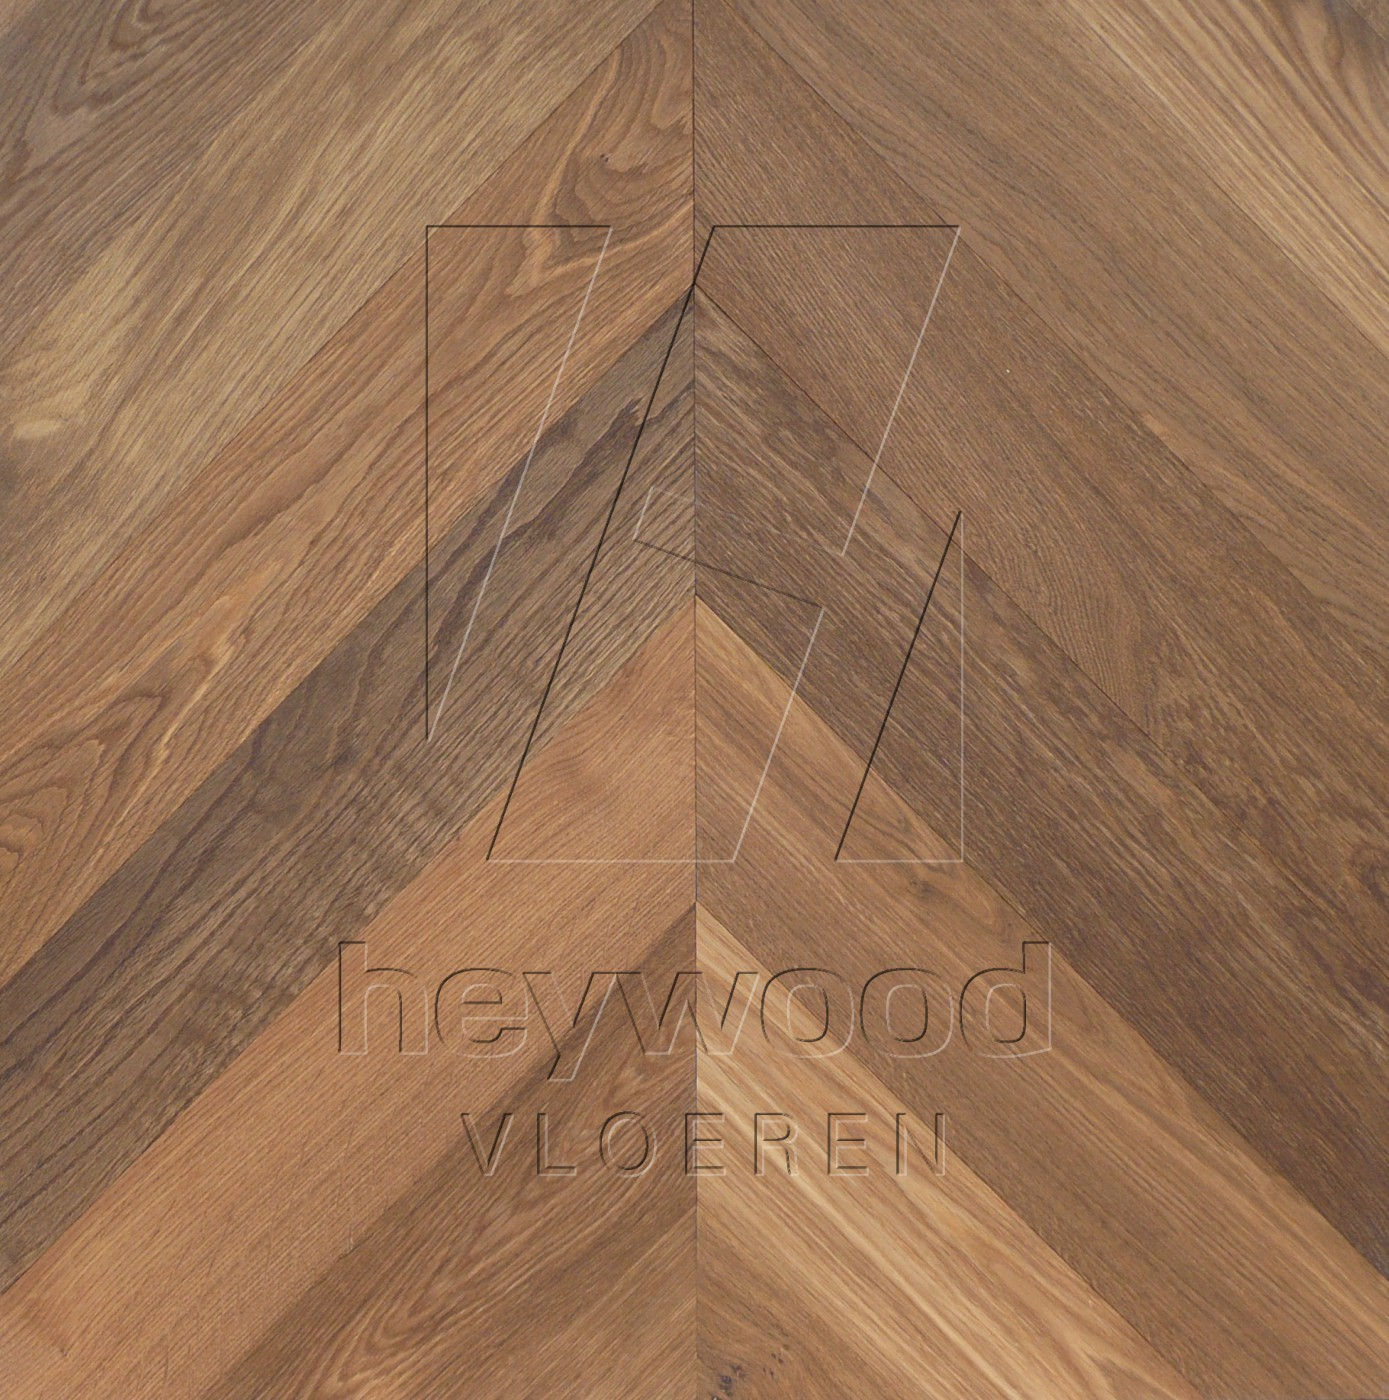 'Galicia coloured' Chevron 45°, Bespoke Elegance in Chevron of Pattern & Panel Floors